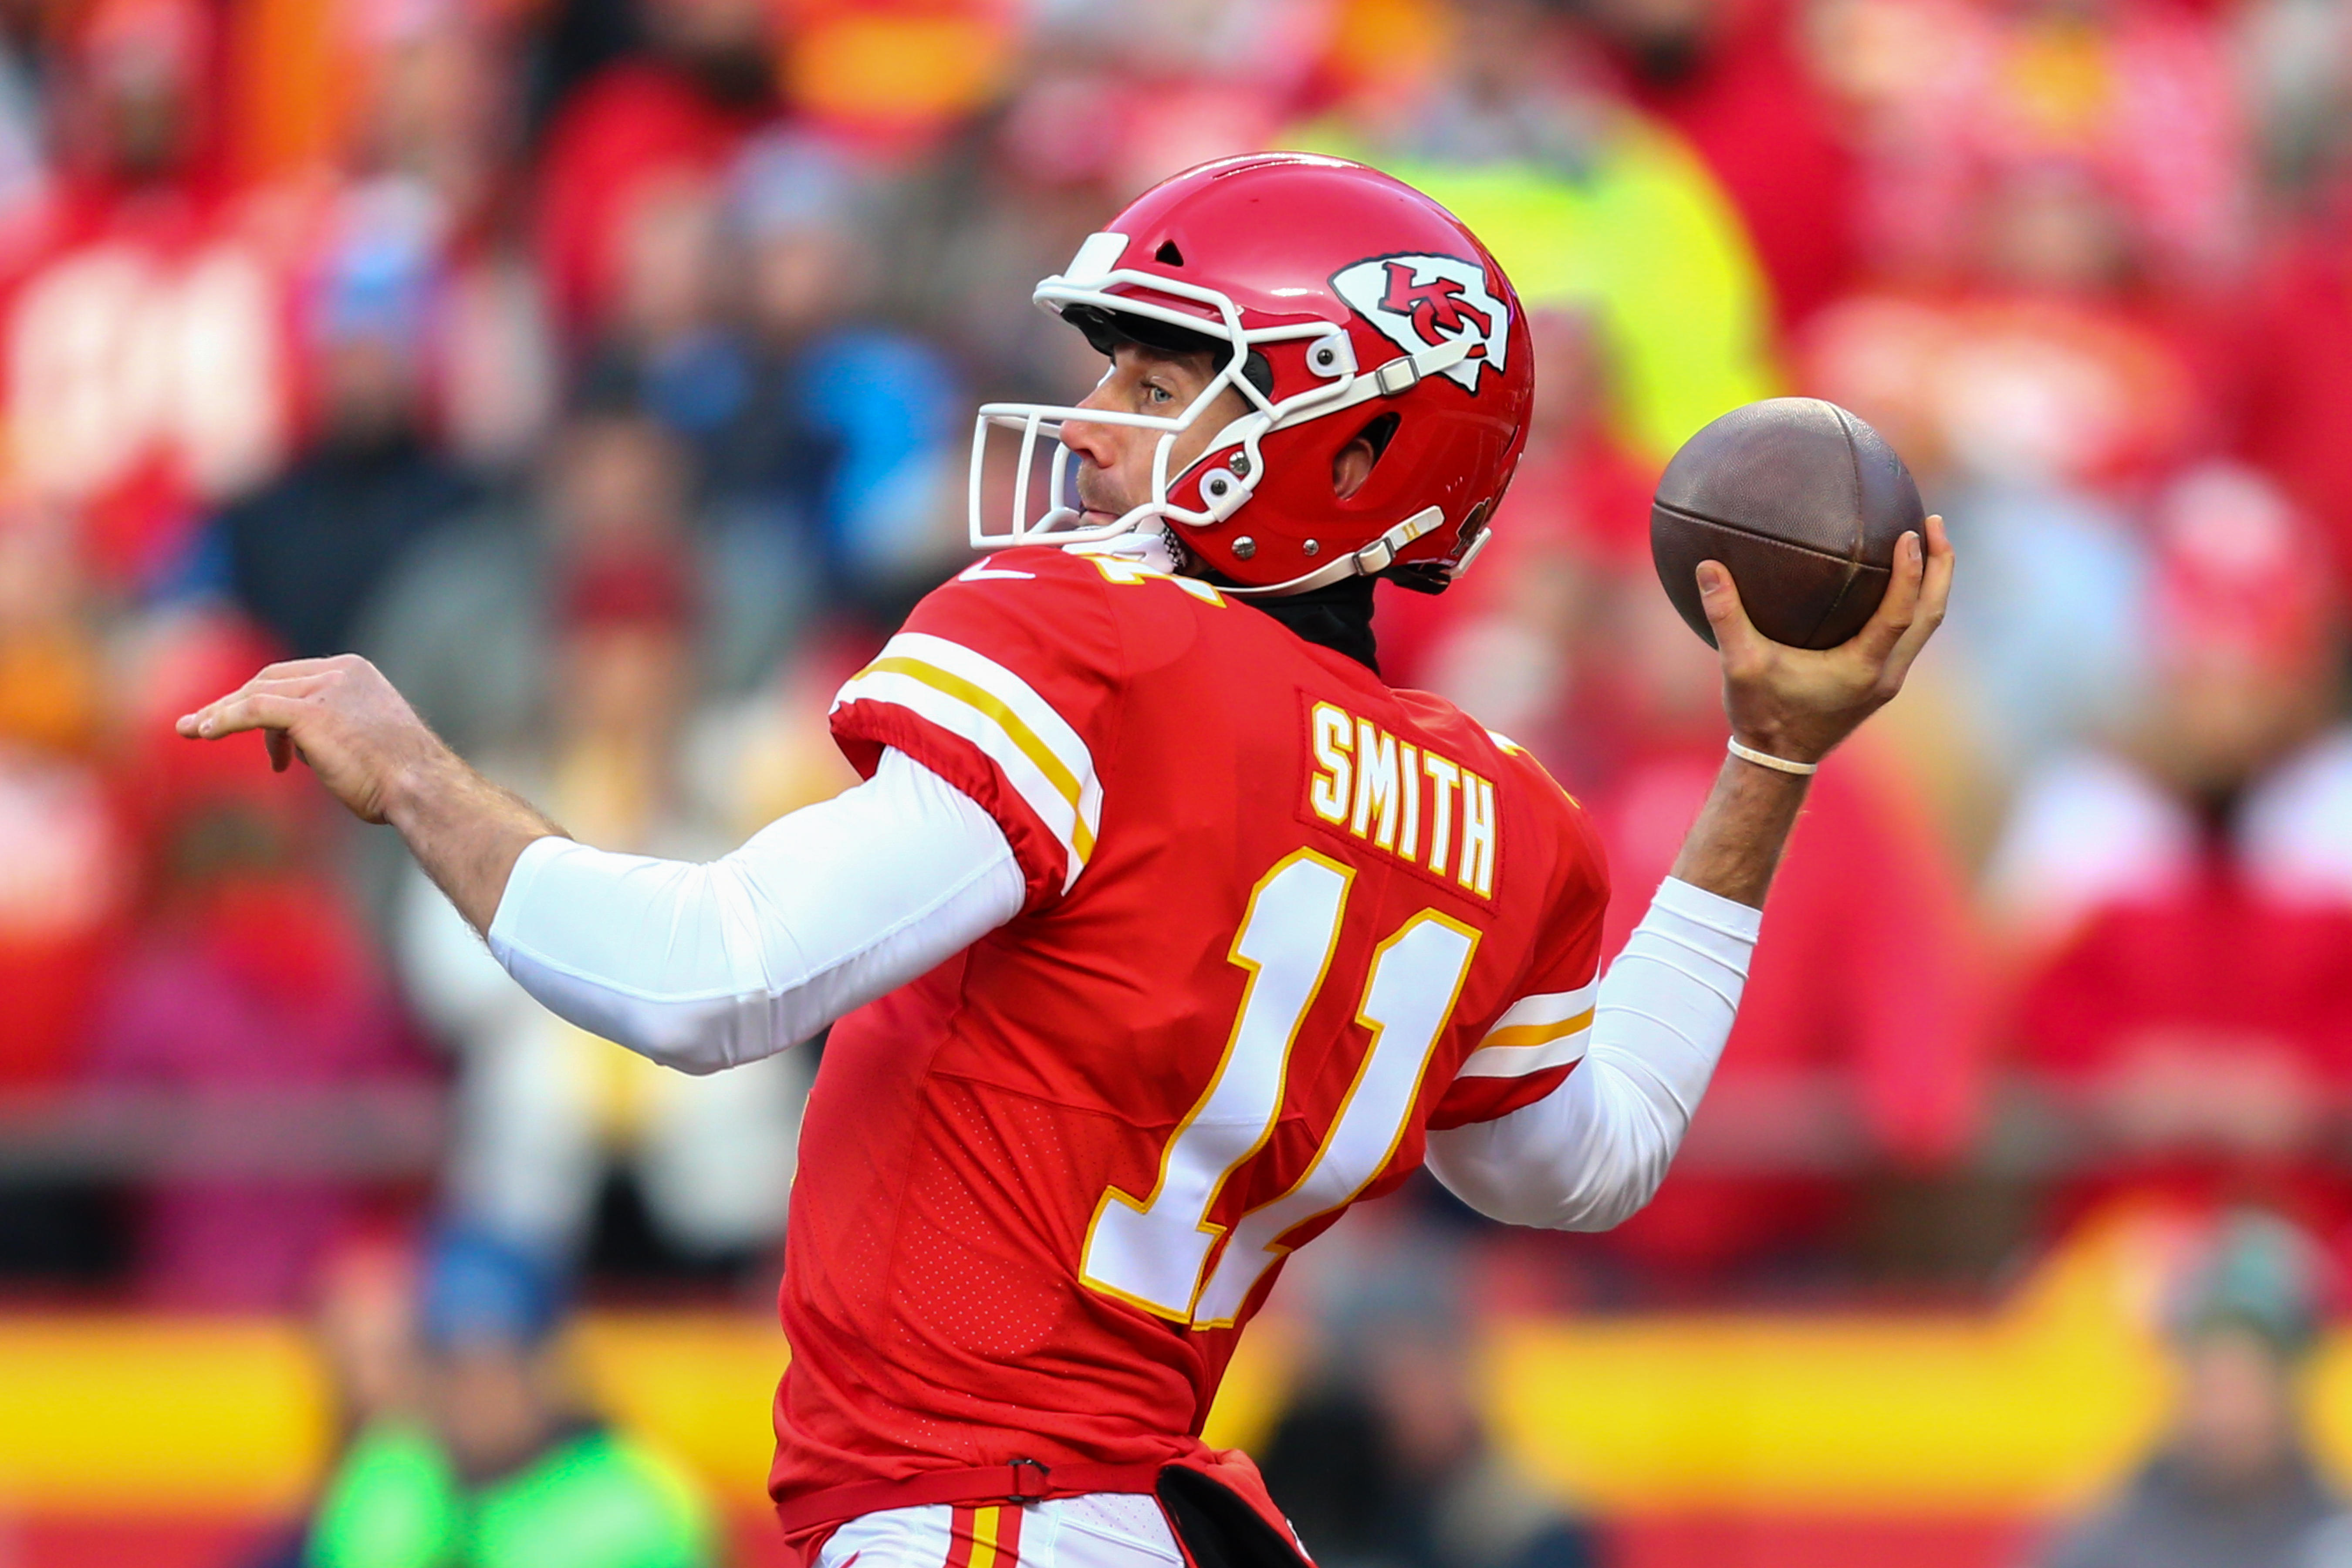 best website 288e3 a15f3 Alex Smith traded by Chiefs to Redskins, sources say - CBS News